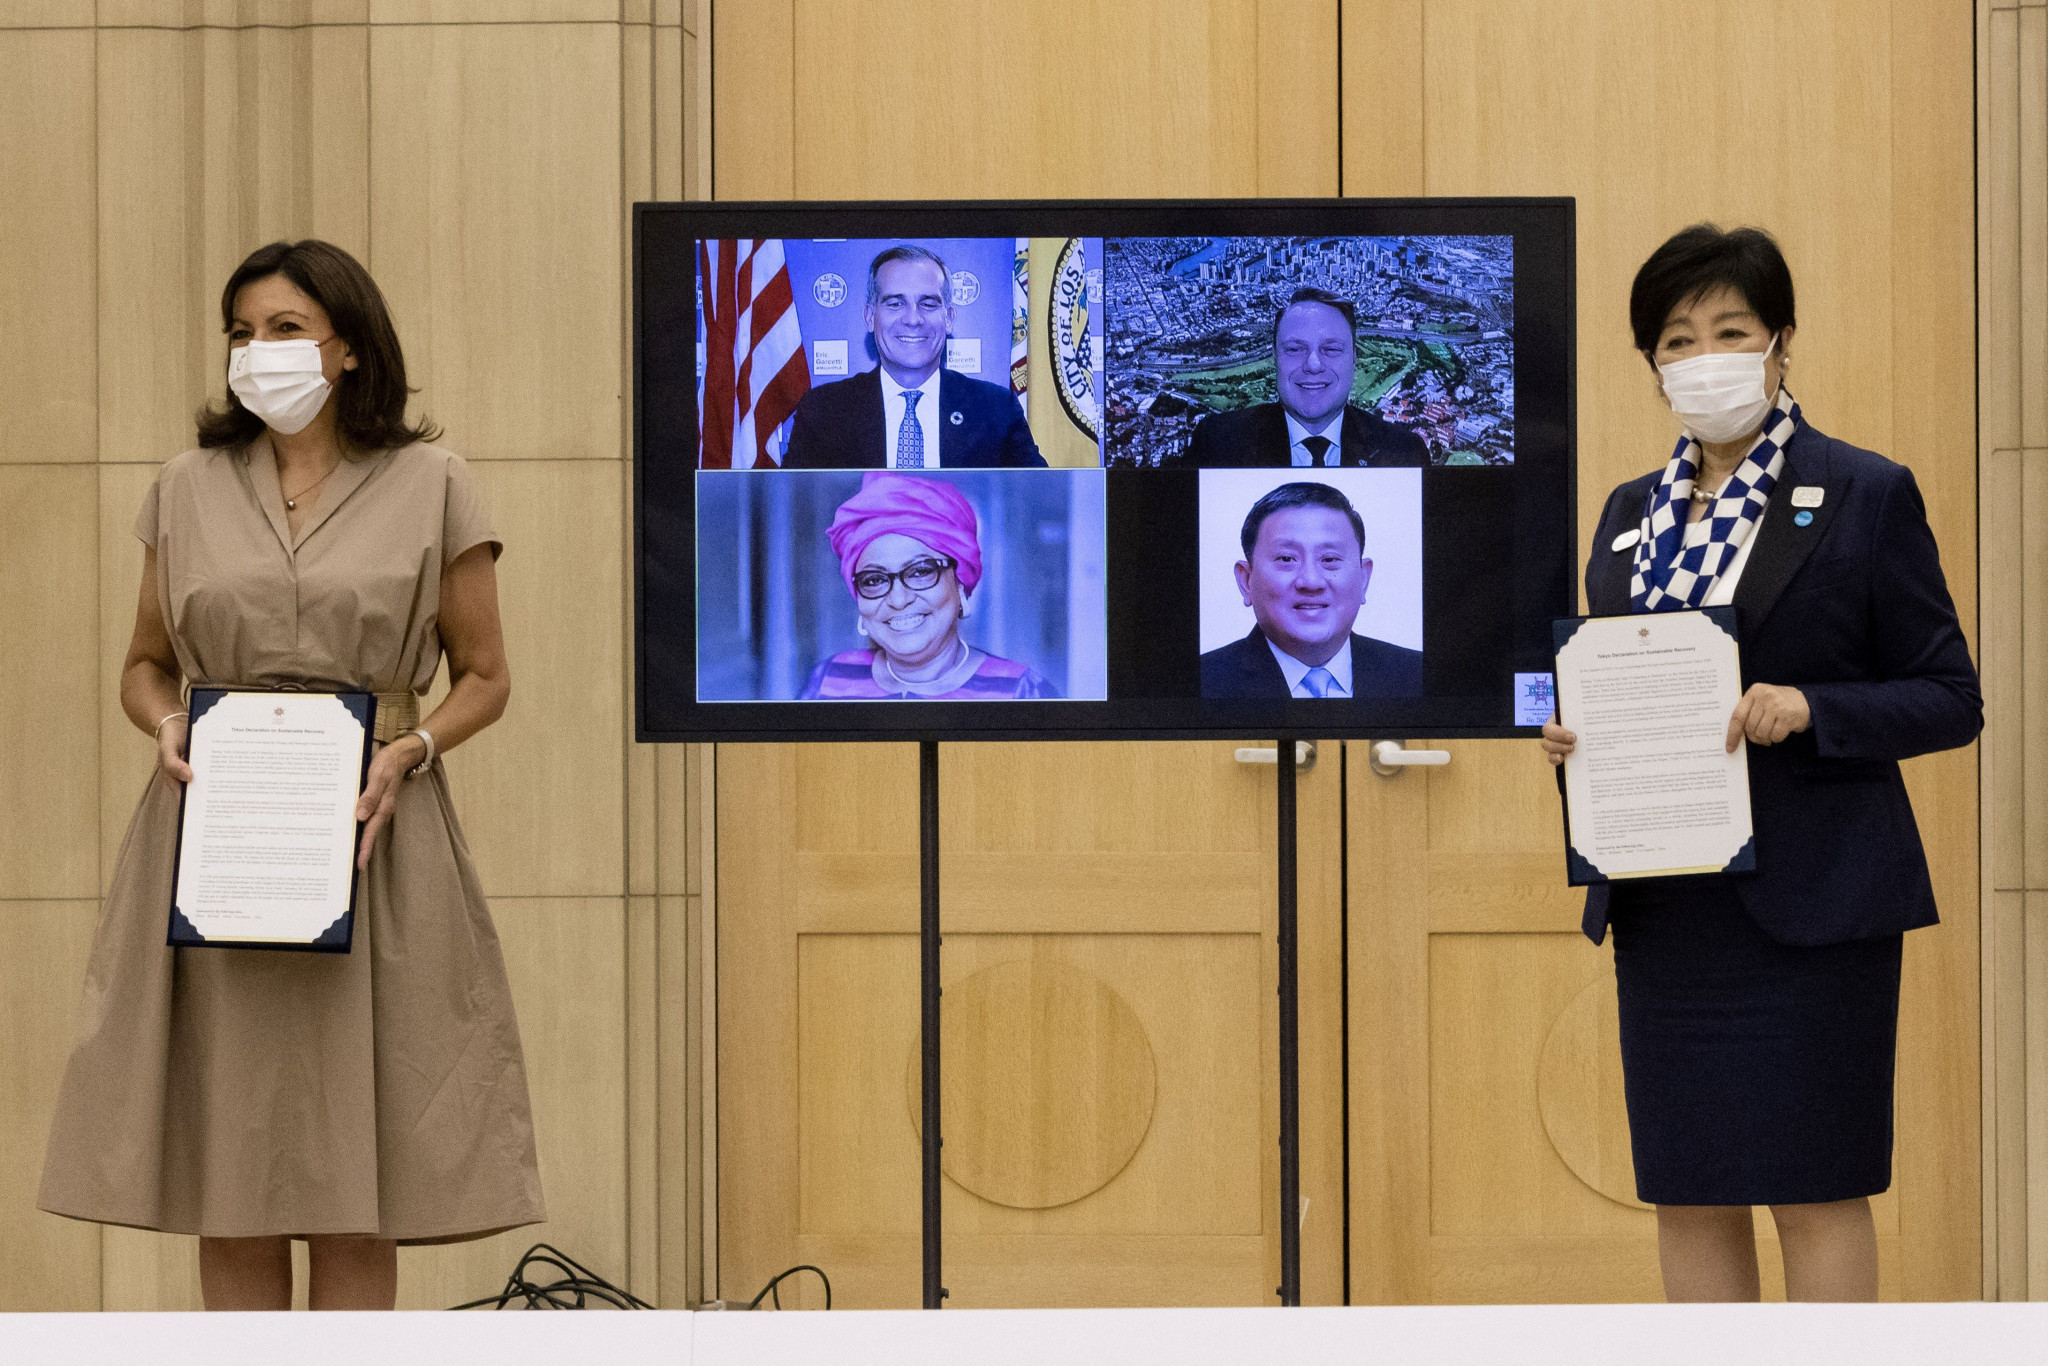 Mayor of Paris Anne Hidalgo and Tokyo Governor Yuriko Koike have made a joint declaration on strengthening relations between the two cities ©Getty Images